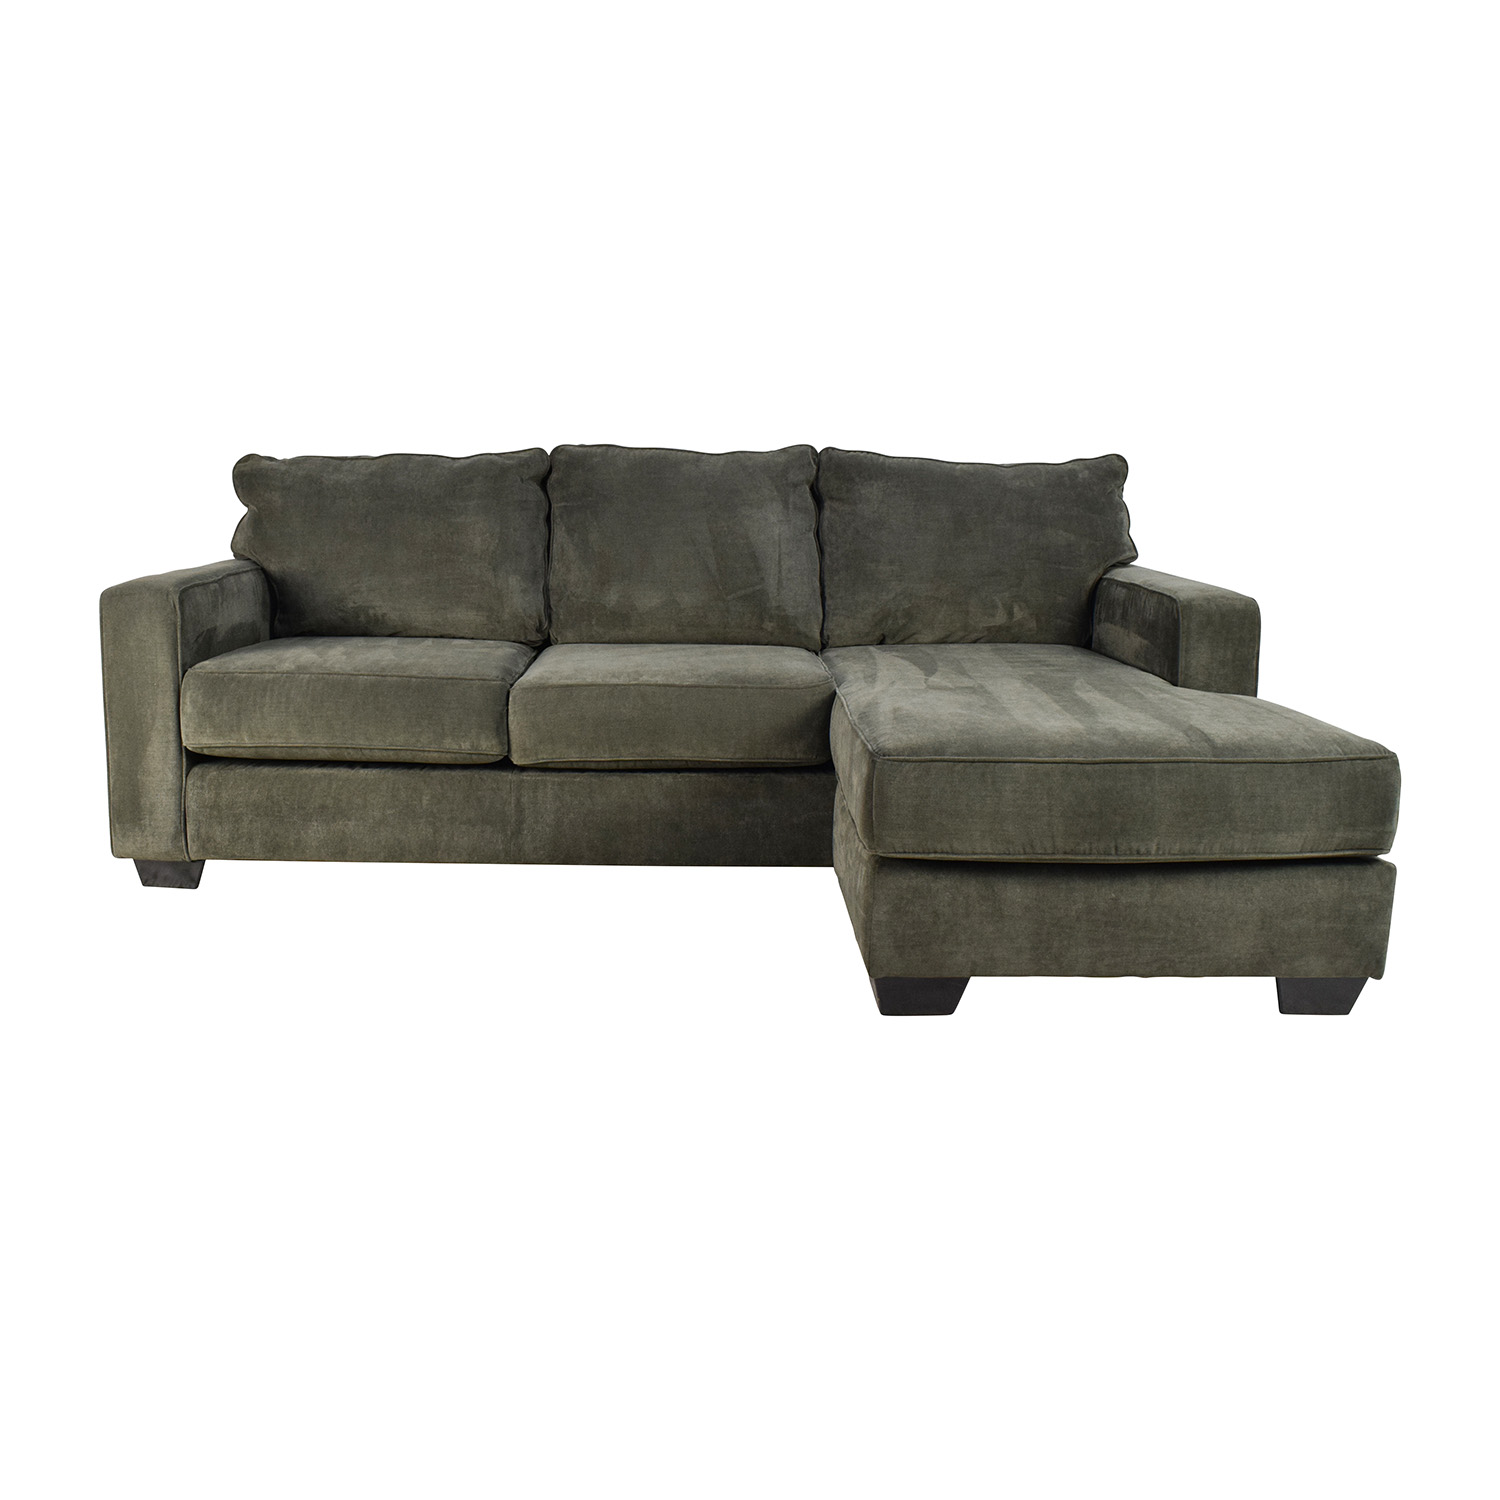 37 off jennifer convertibles jennifer convertibles for Sectional sofa jennifer convertible